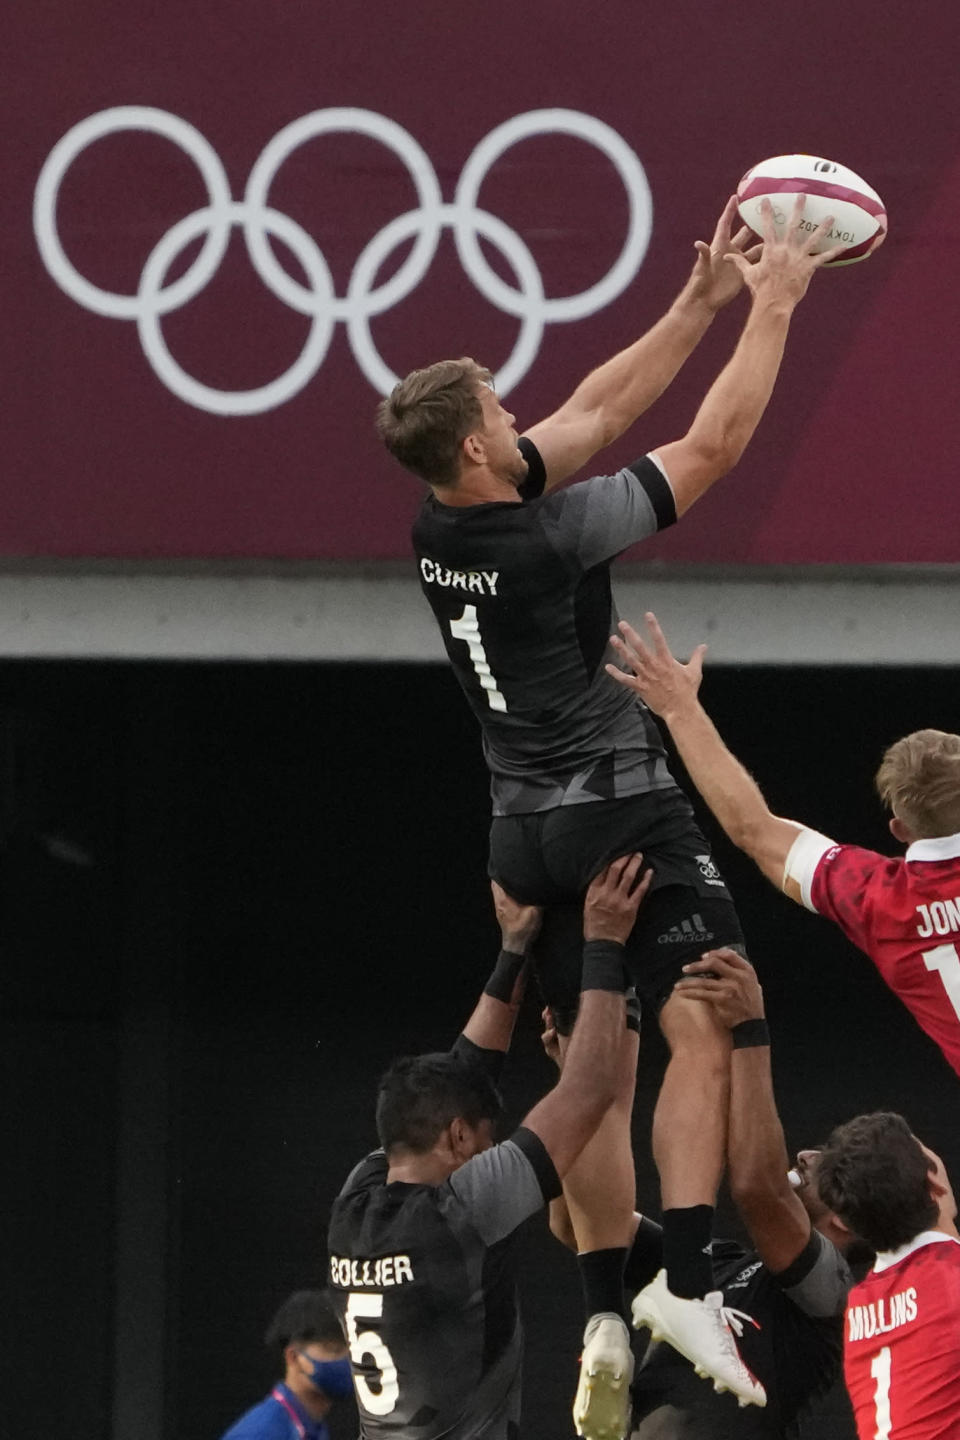 New Zealand's Scott Curry is lifted by teammates to catch the ball on a lineout, in their men's rugby sevens quarterfinal match against Canada at the 2020 Summer Olympics, Tuesday, July 27, 2021 in Tokyo, Japan. (AP Photo/Shuji Kajiyama)